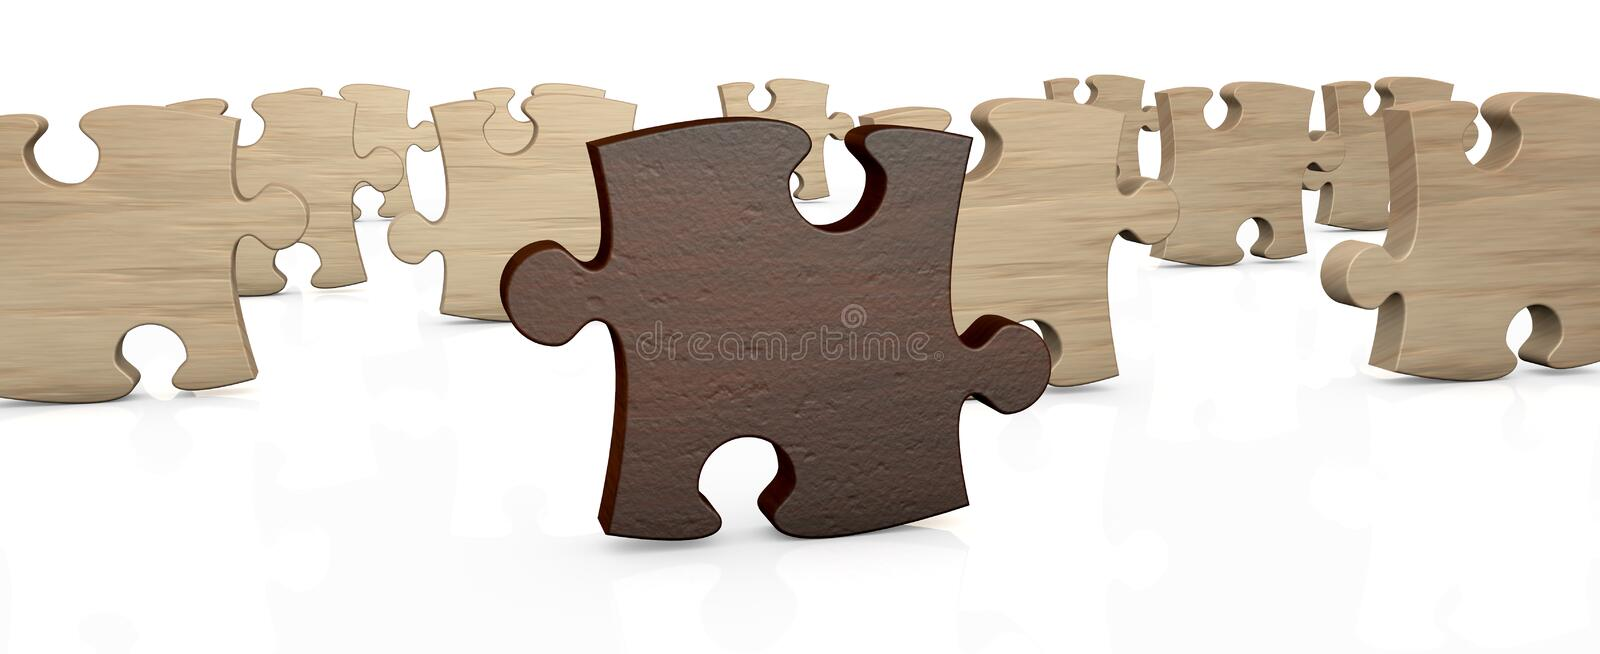 Download Jigsaw puzzle stock illustration. Image of puzzle, different - 23807060